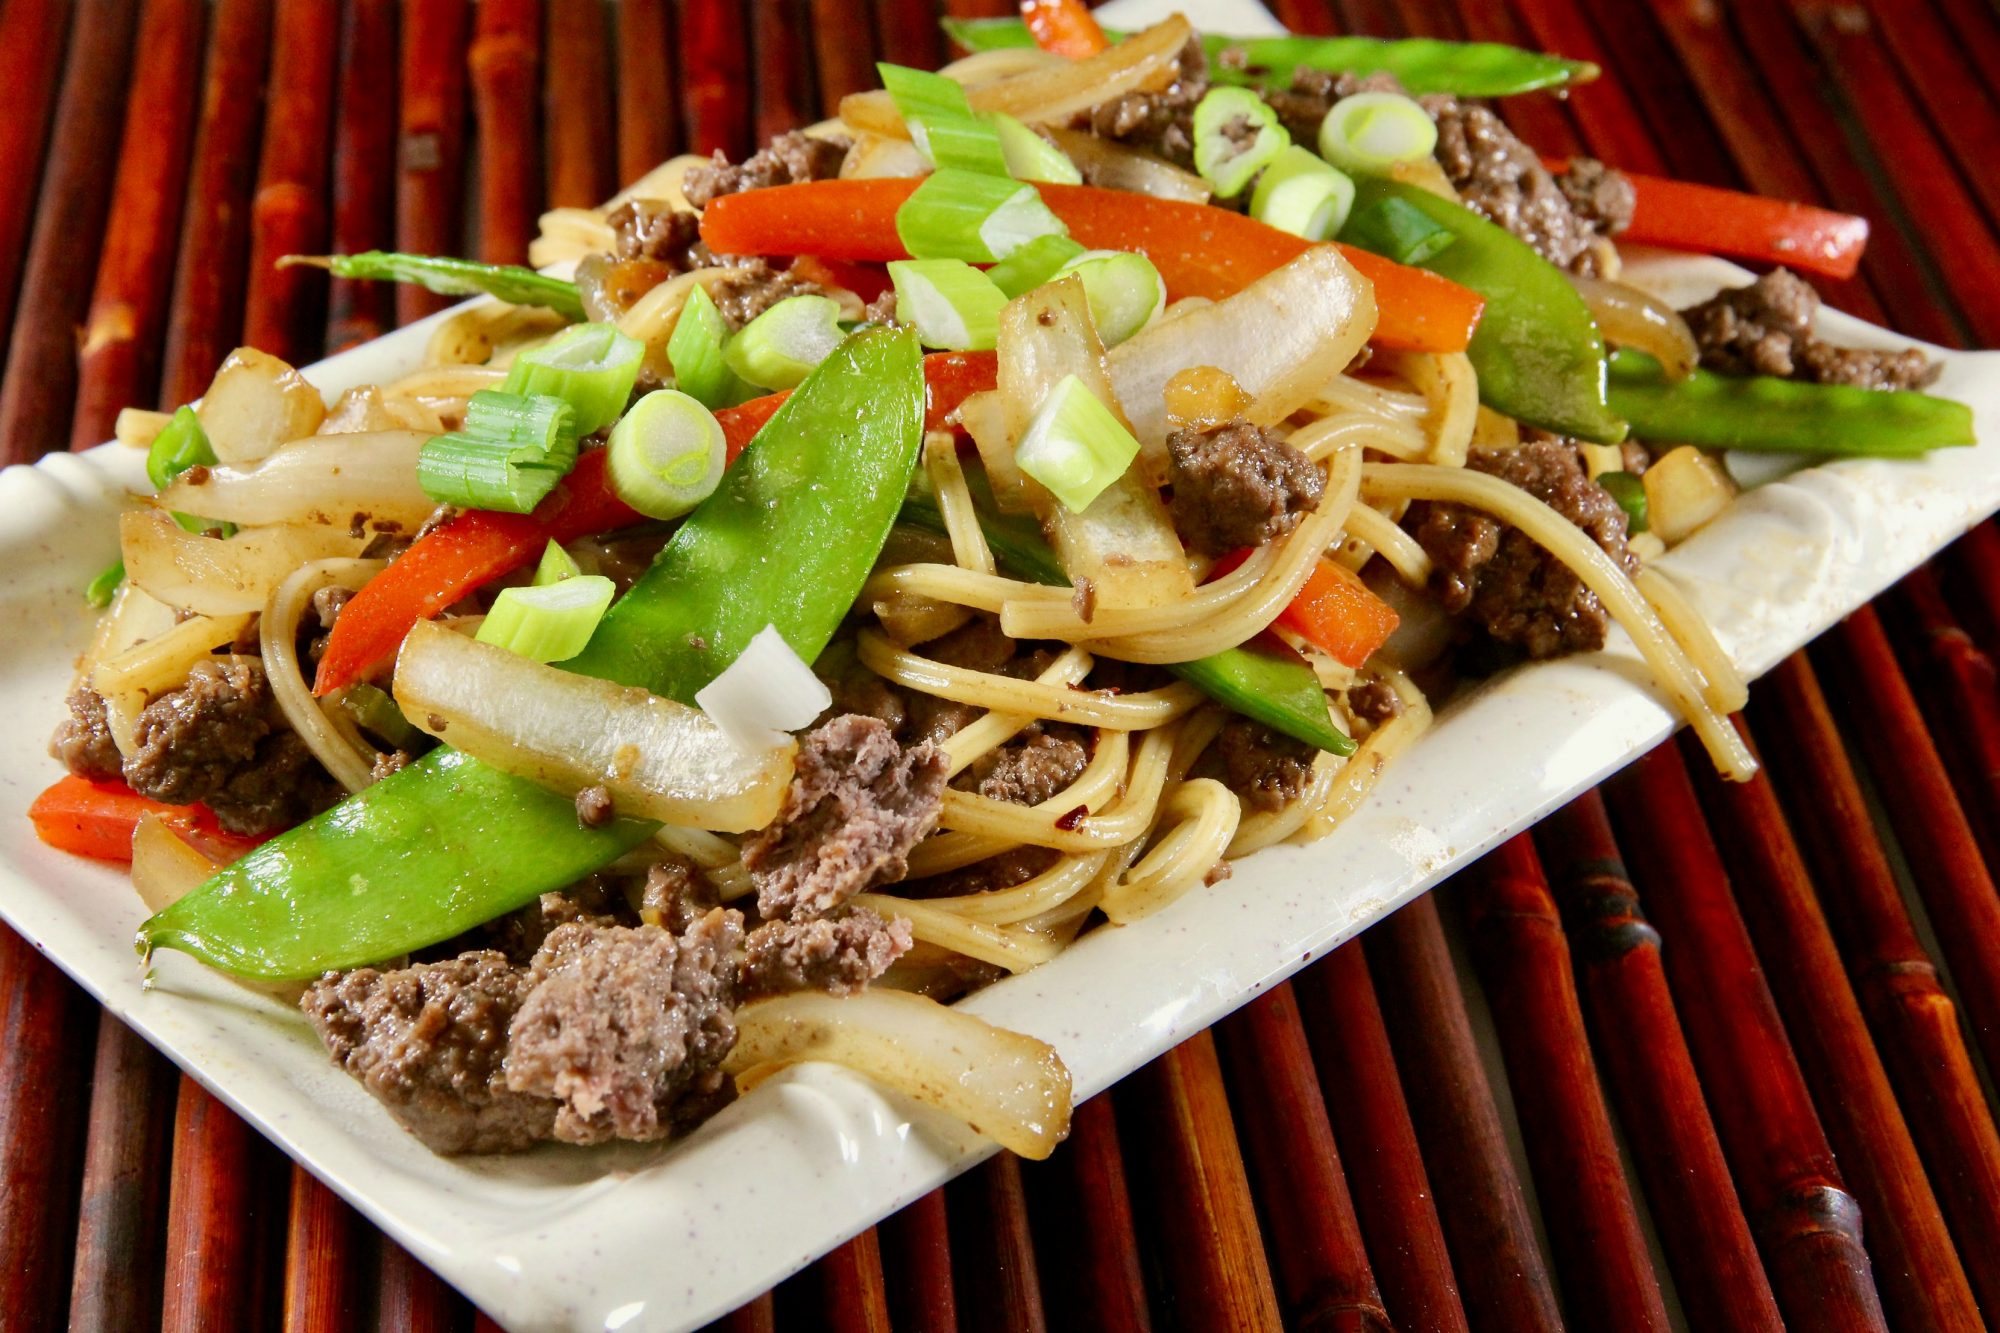 """Recipe creator lutzflcat got rave reviews for this lo mein recipe, which she makes with an array of vegetables and ground beef for an easy, inexpensive meal. She says: """"You can make the sauce in advance and refrigerate, which makes this even more suitable for a quick weeknight dinner."""""""